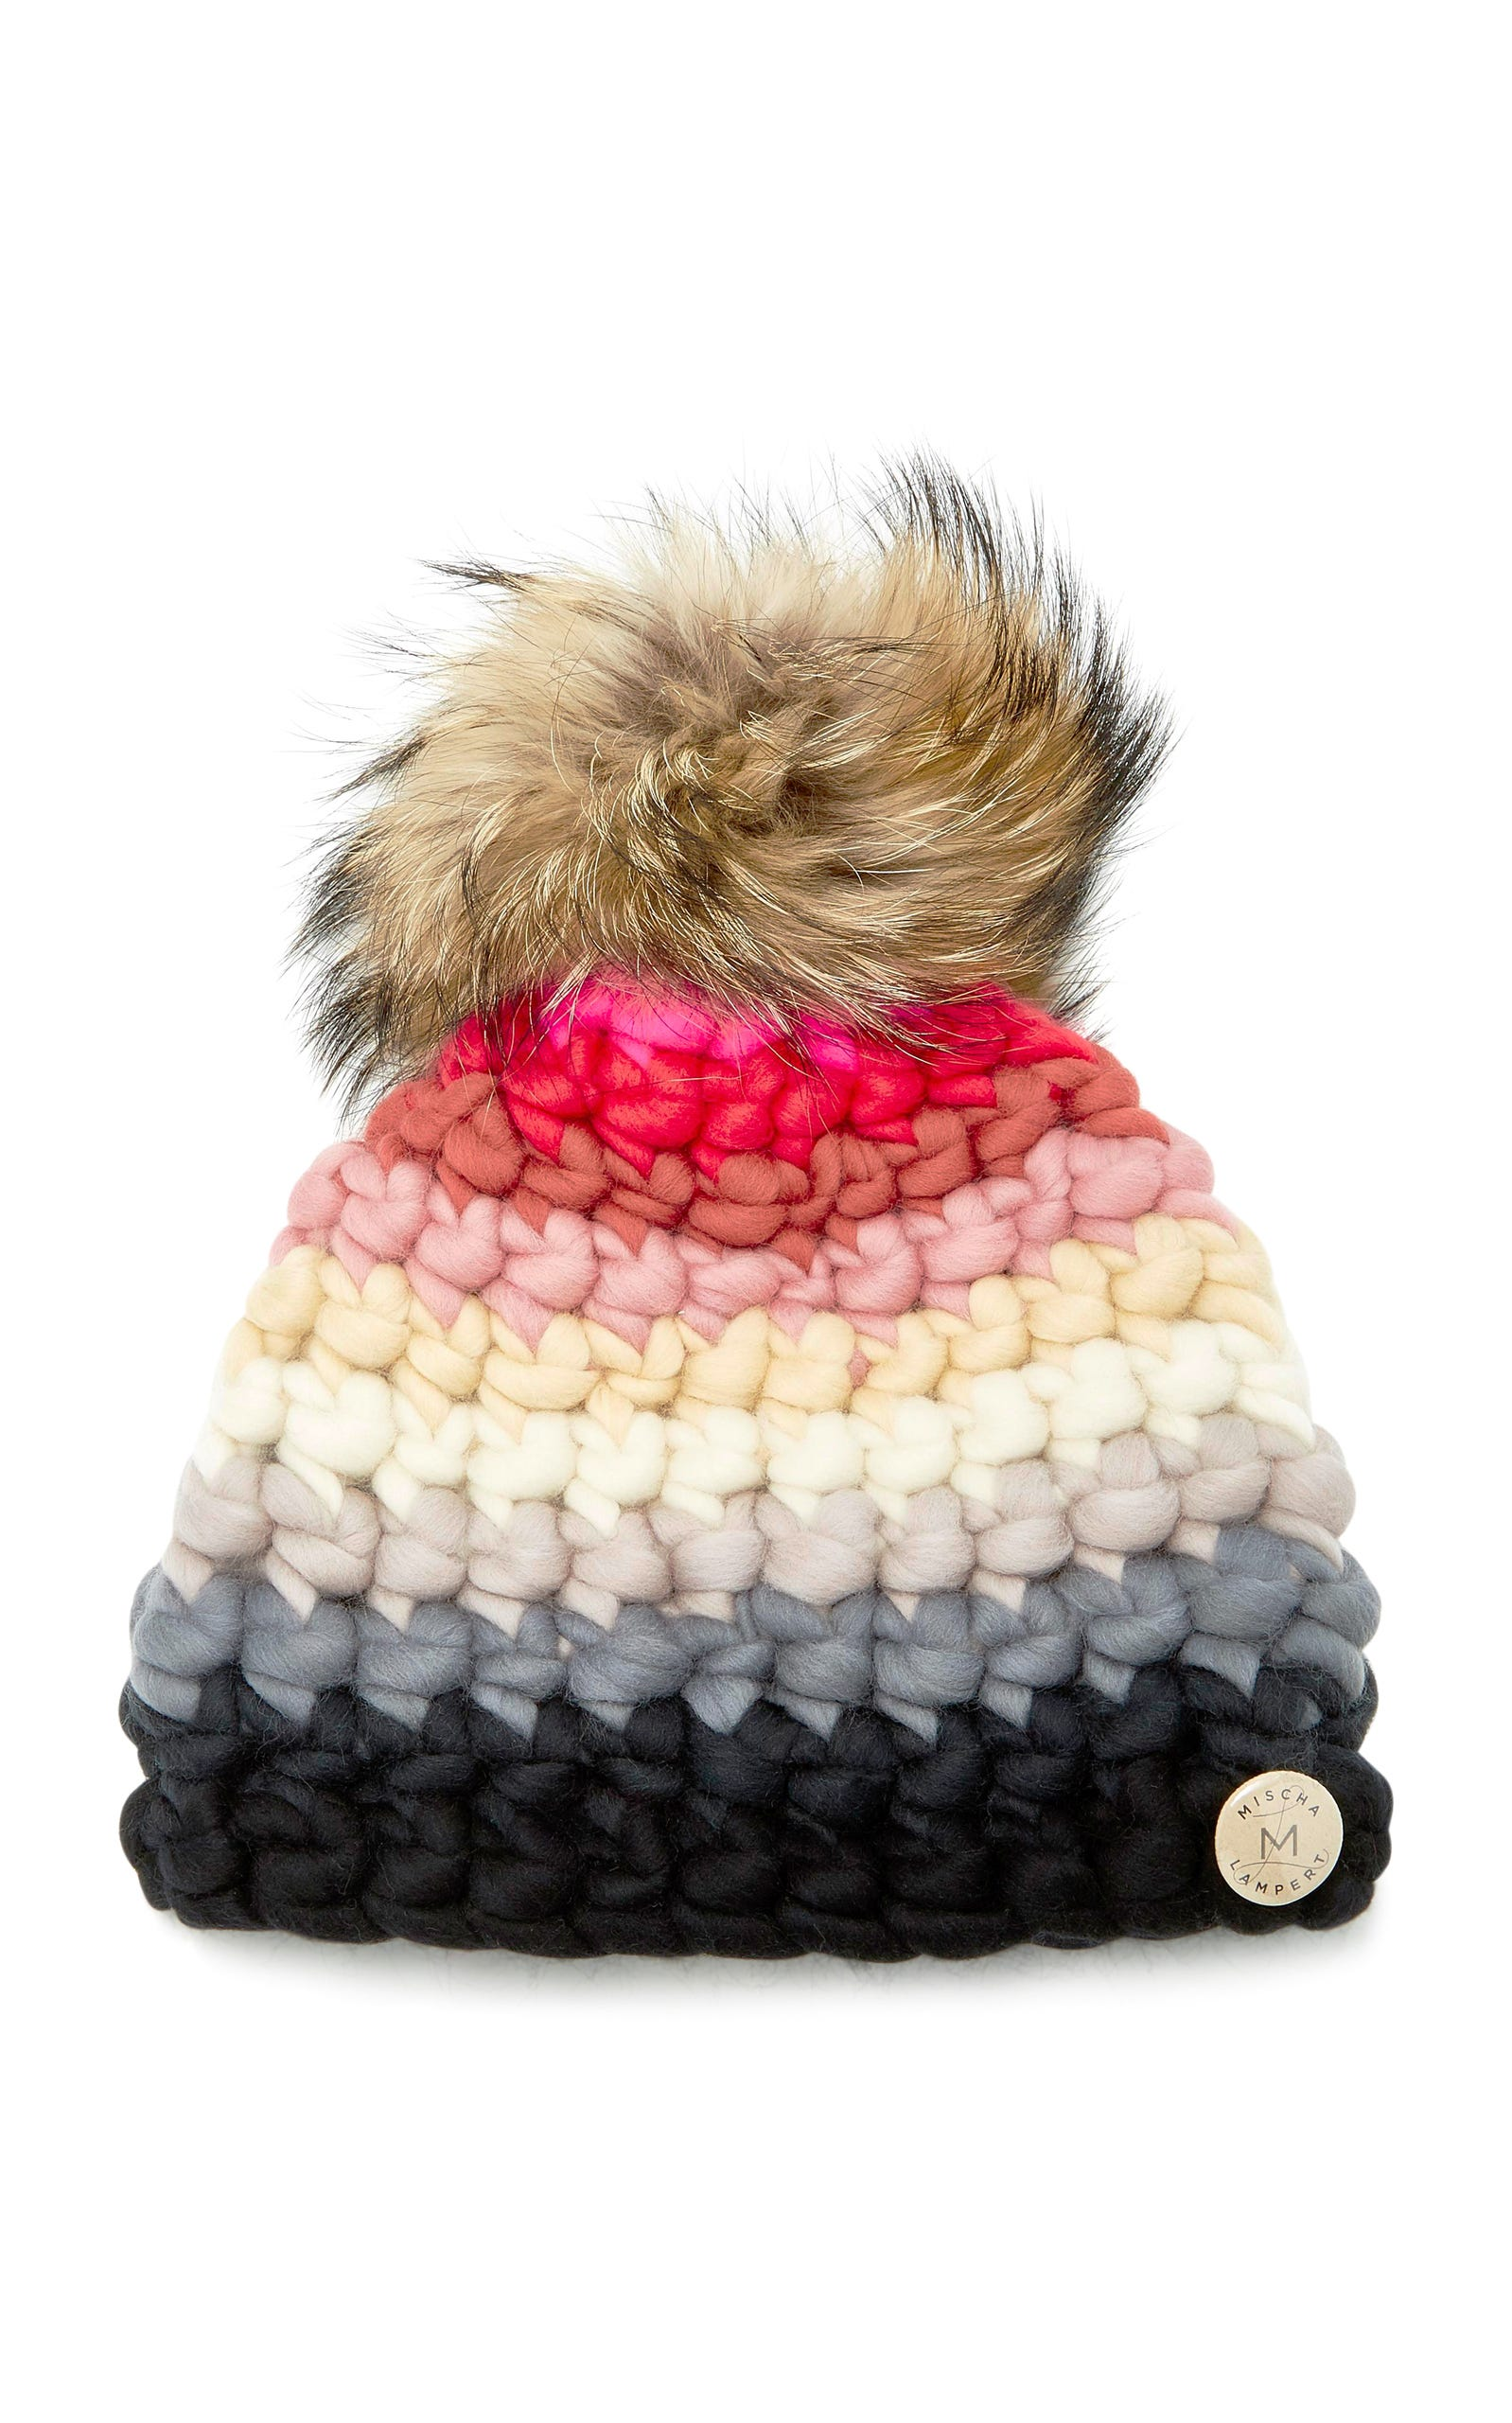 Cute Winter Hats Scarves Gloves 2017 a6651fad99c4